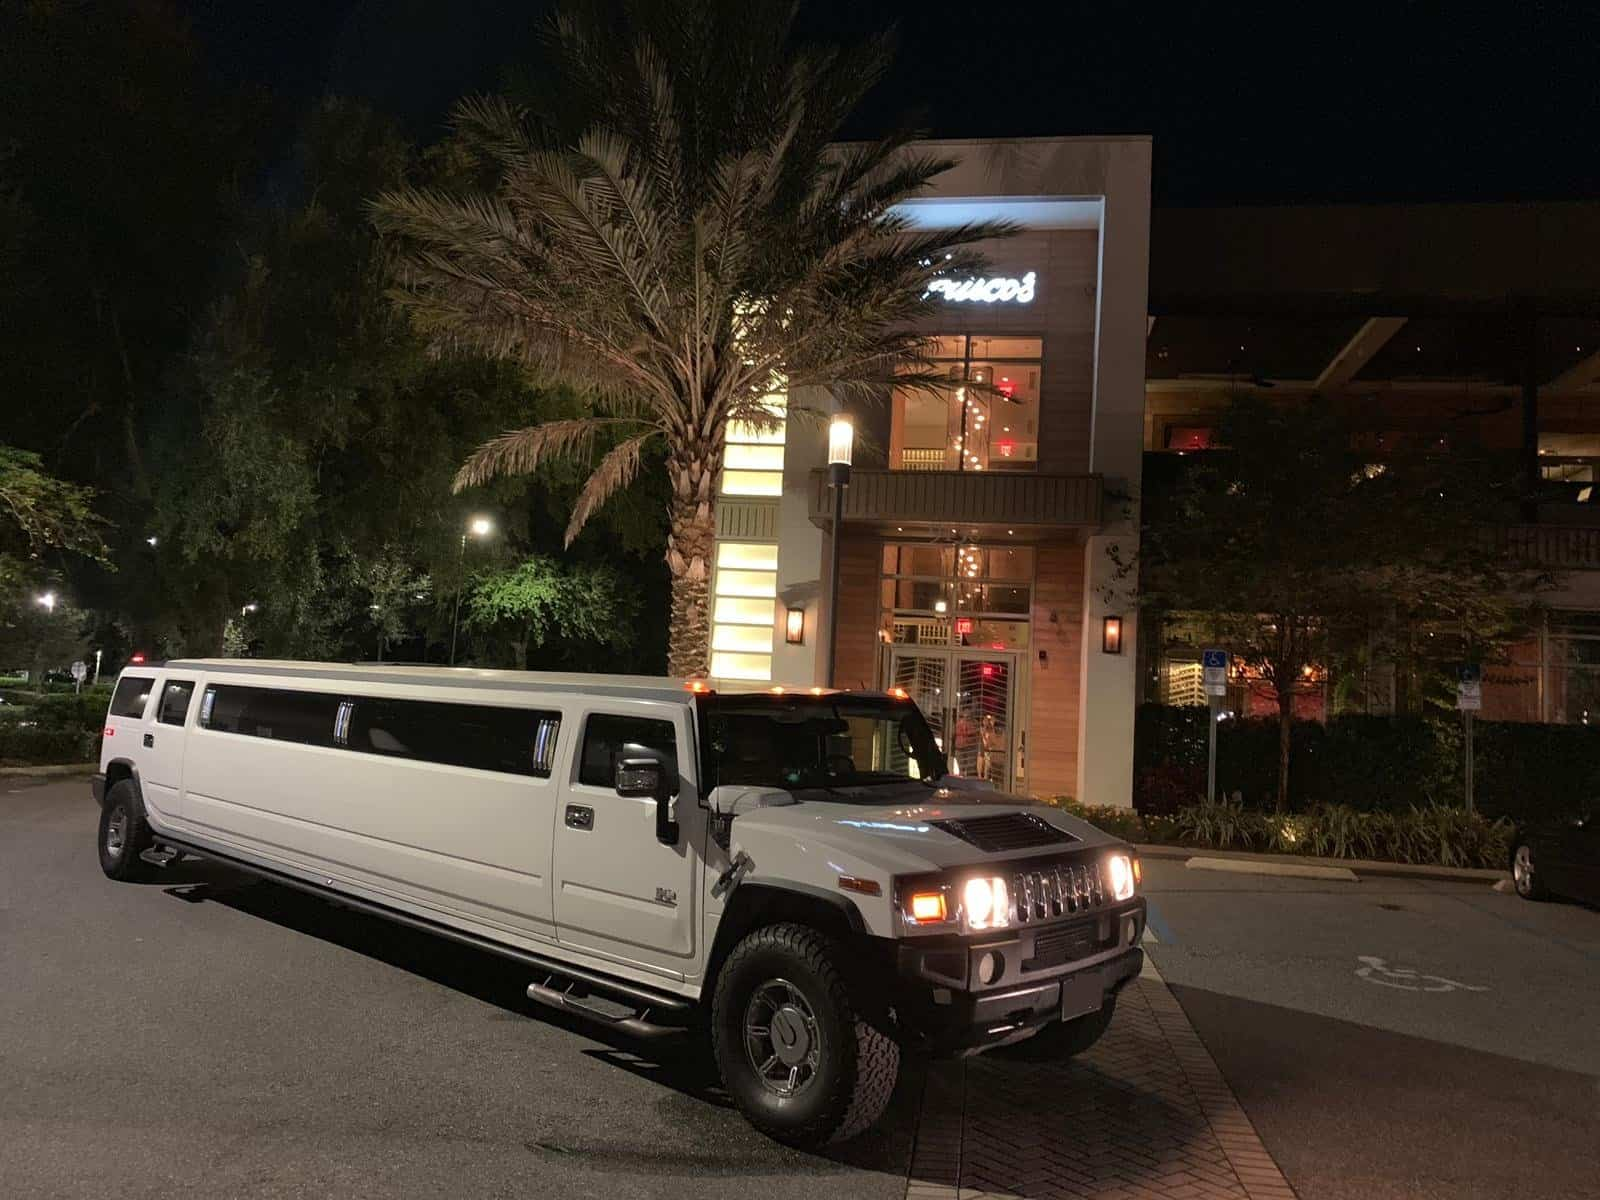 Hummer Limo Outside a Restaurant in Orlando